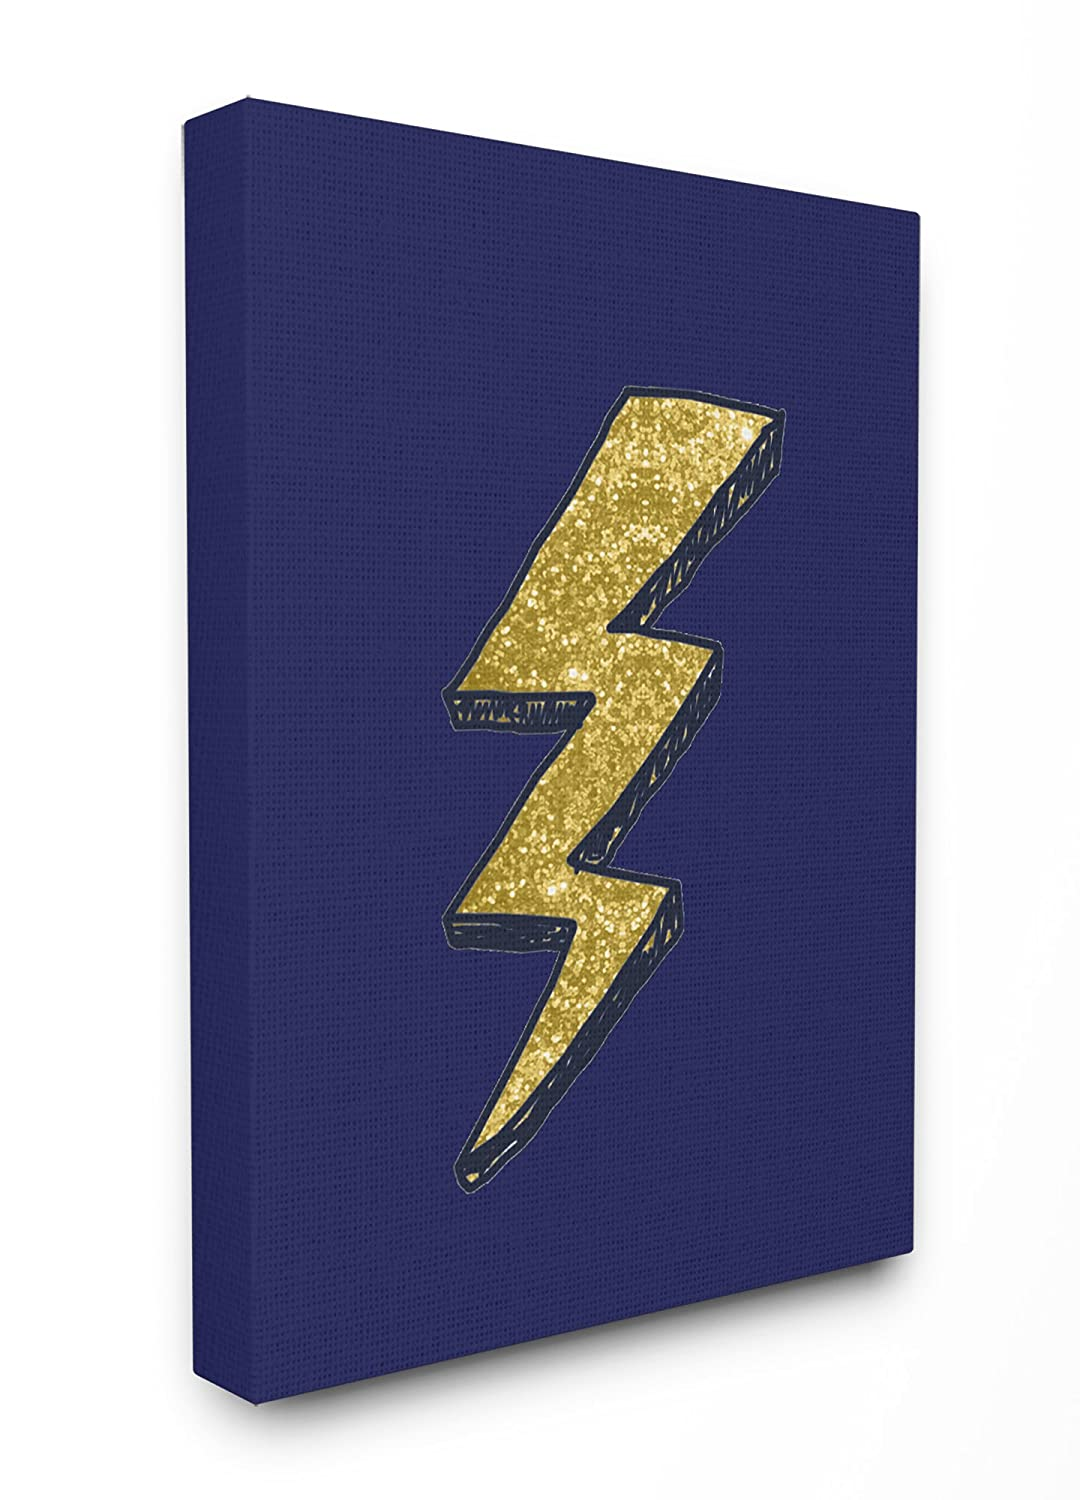 Stupell Home D/écor Graphic Lightning Bolt Gold and Navy Stretched Canvas Wall Art Proudly Made in USA 16 x 1.5 x 20